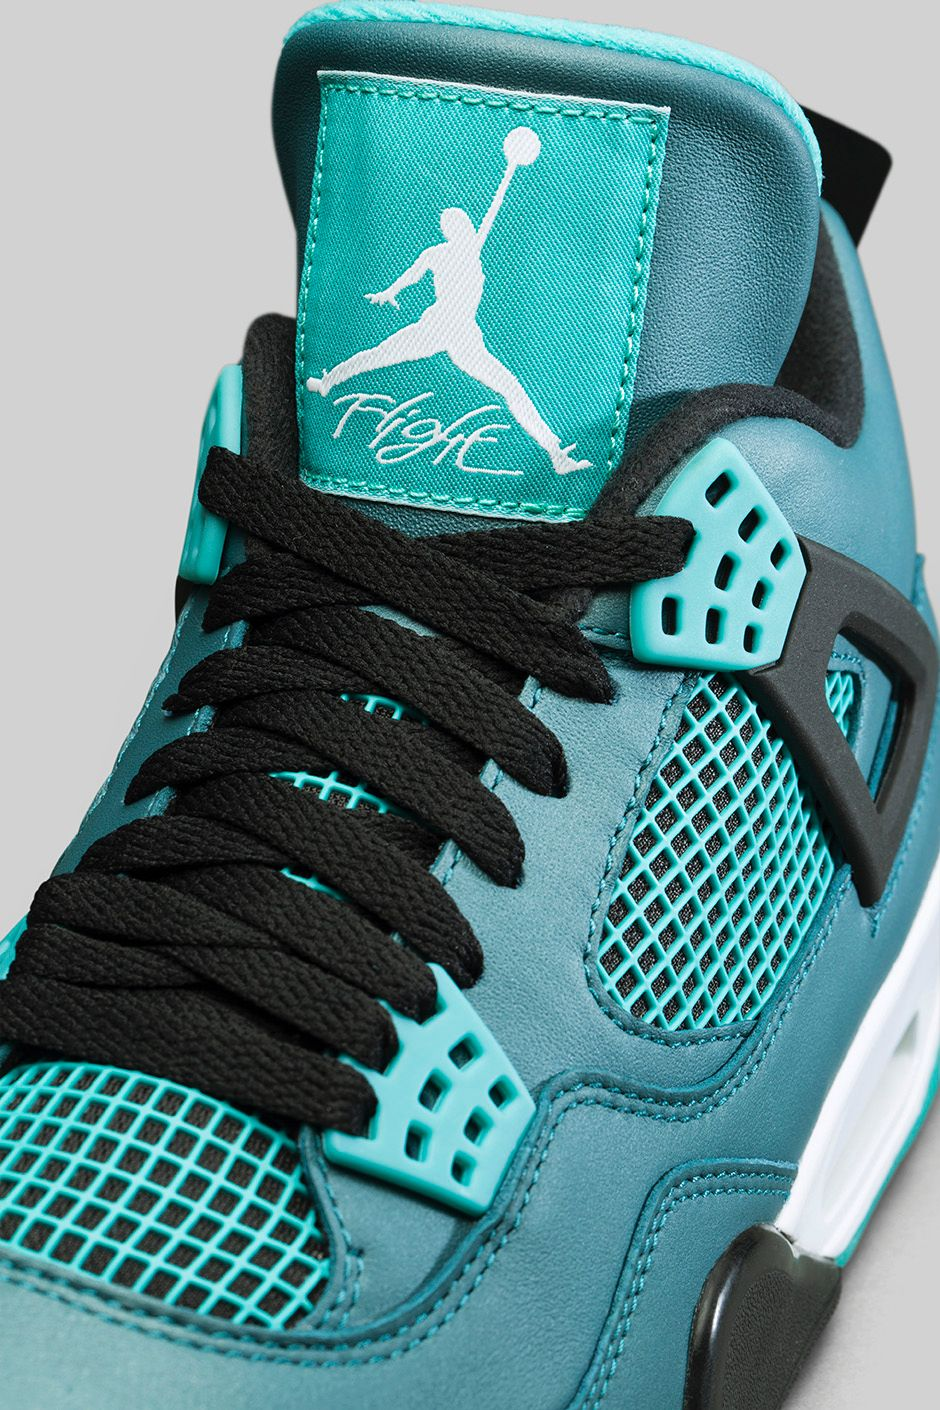 Air Jordan 4 Retro 'Teal' - Official Look + Release Info - WearTesters